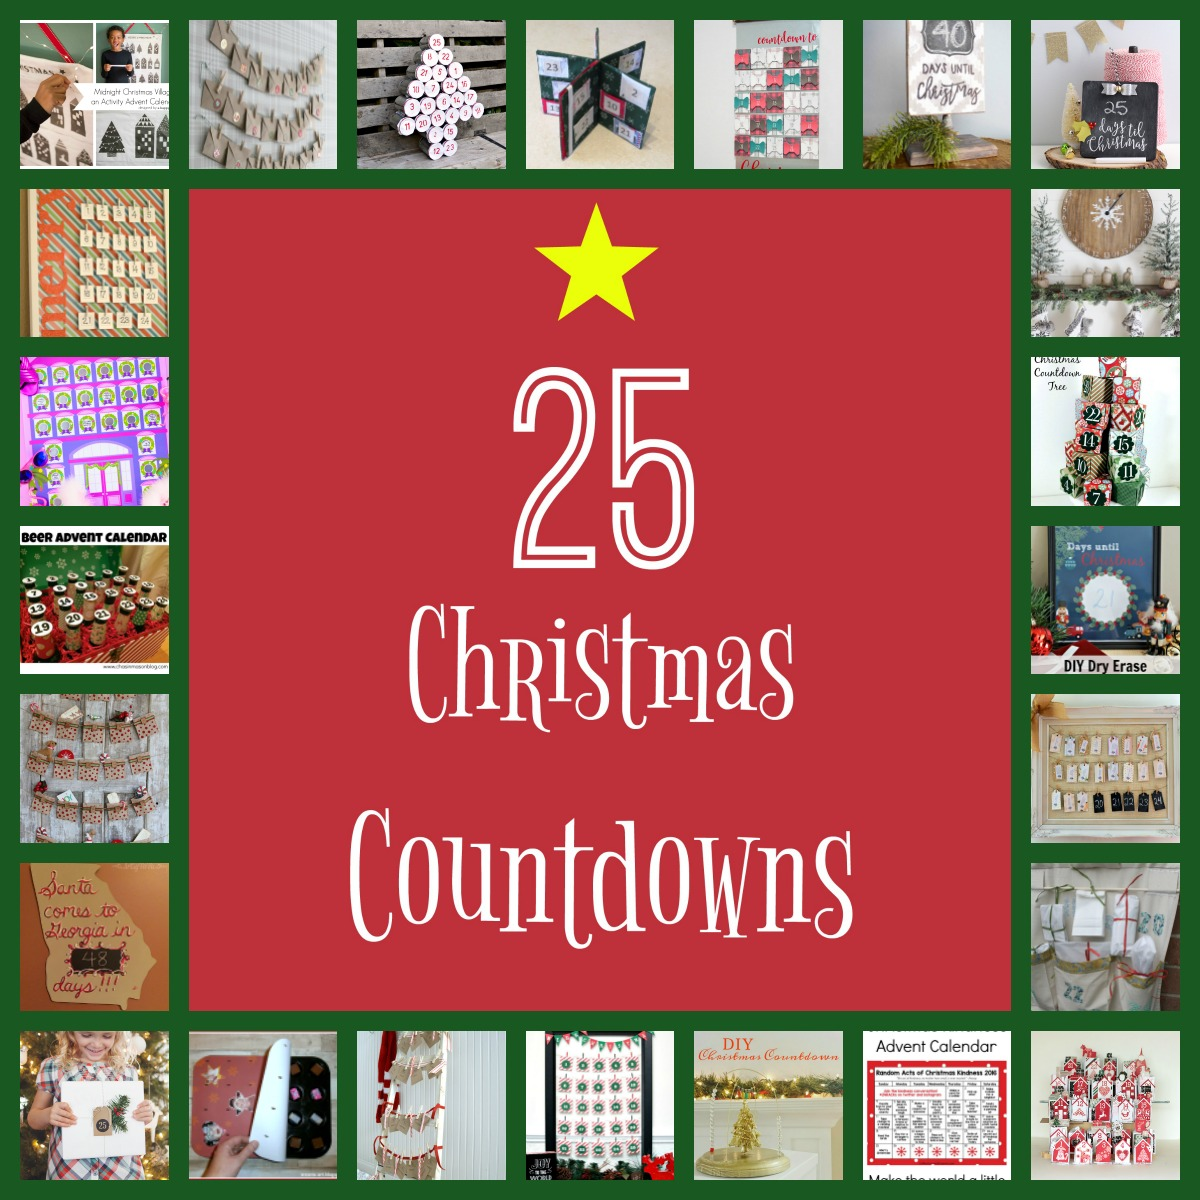 How Many Days Left For Christmas 2019.How Many Days Left For Christmas